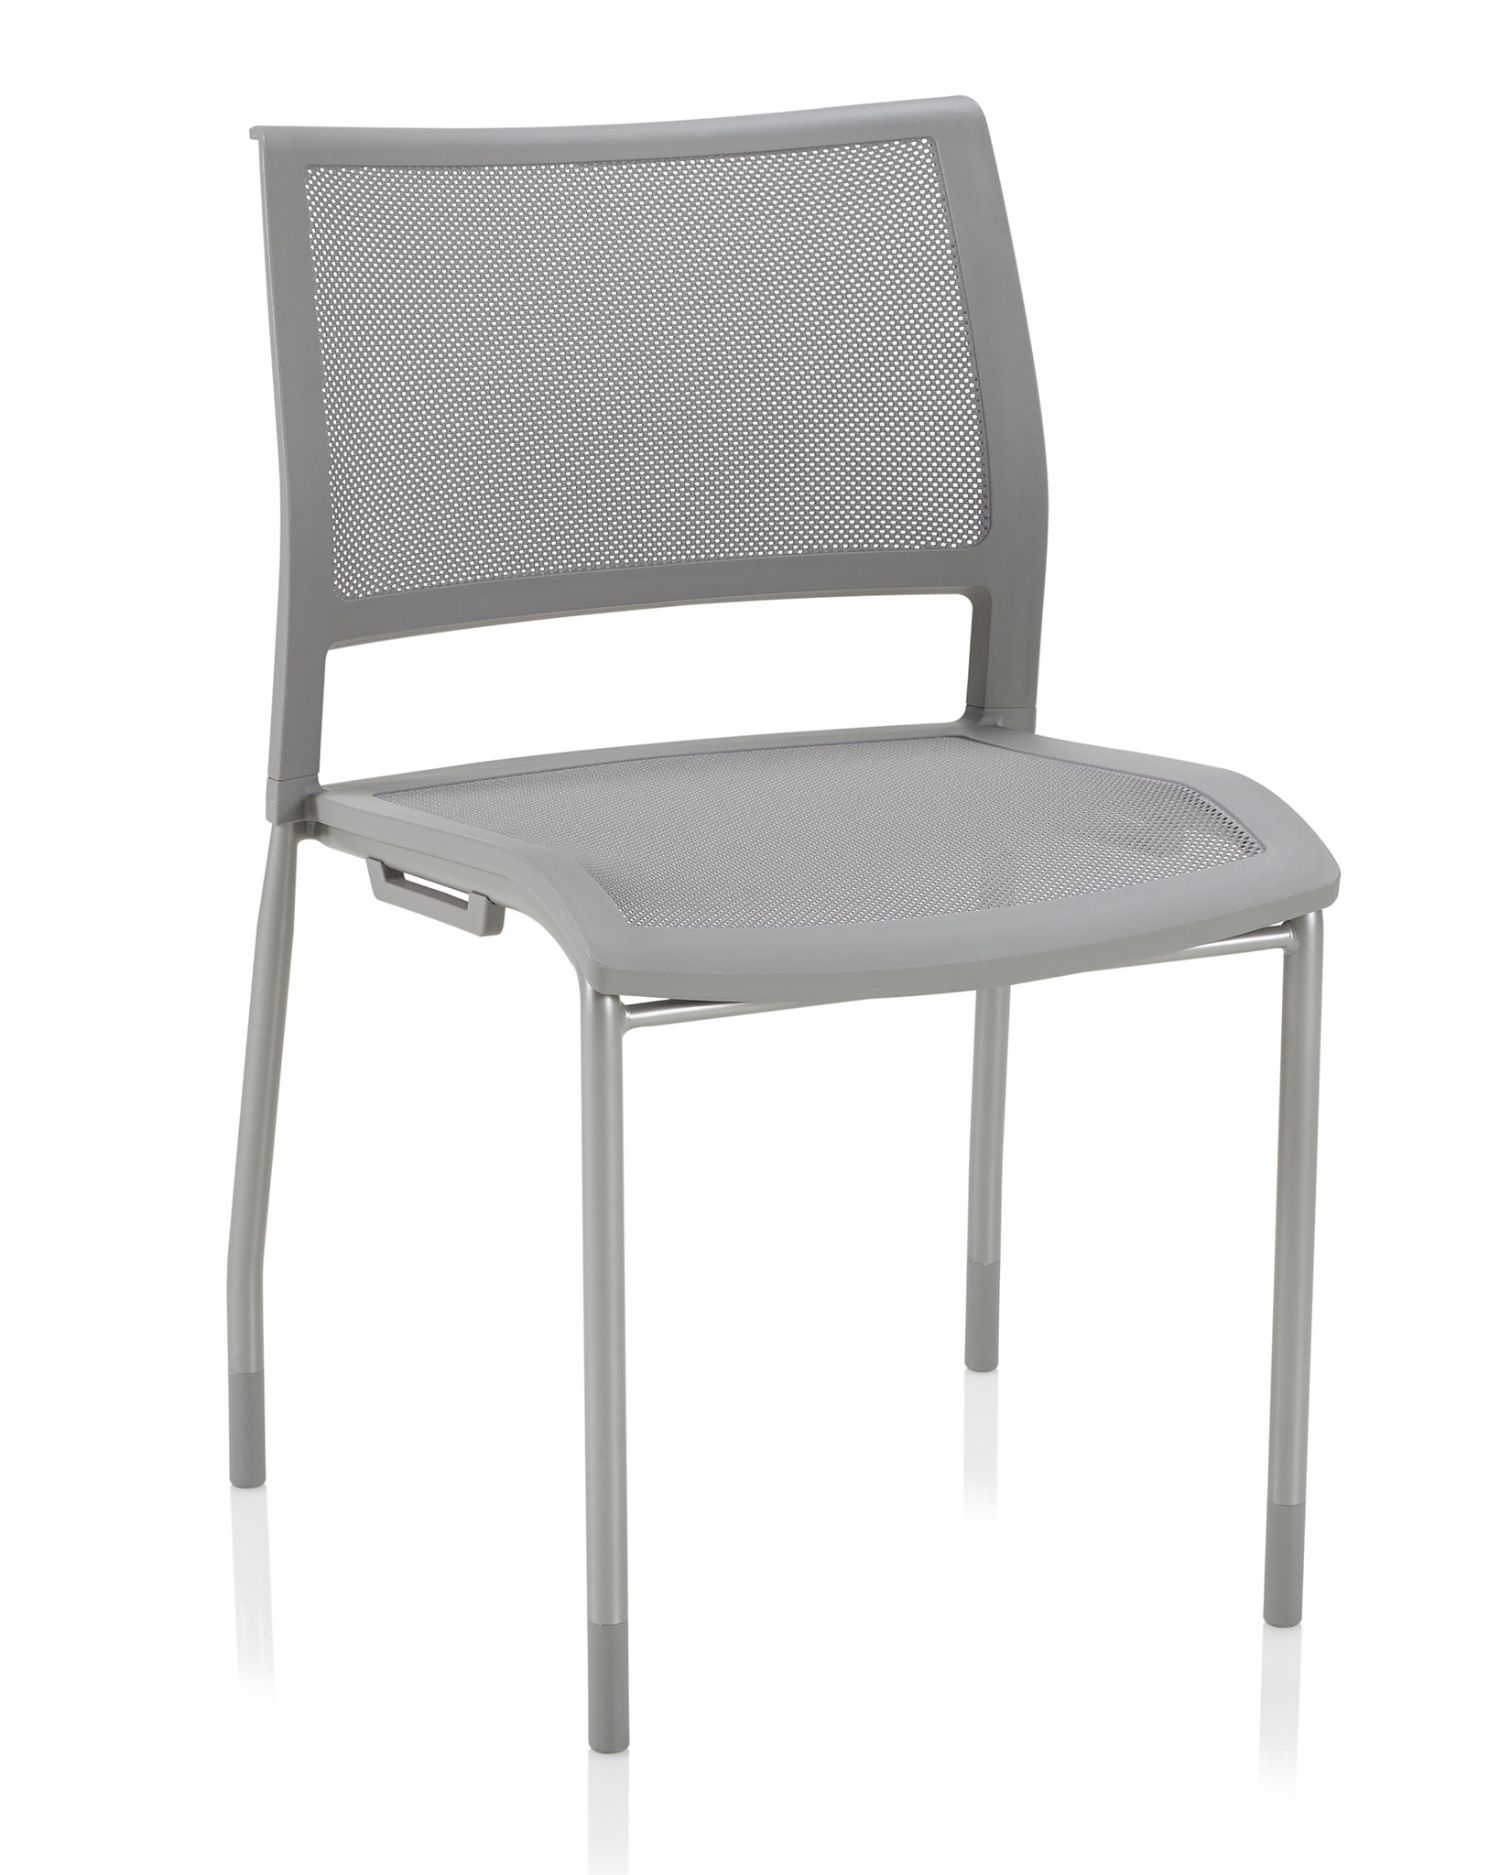 ki opt4 stone grey stack chair with mesh seat and back